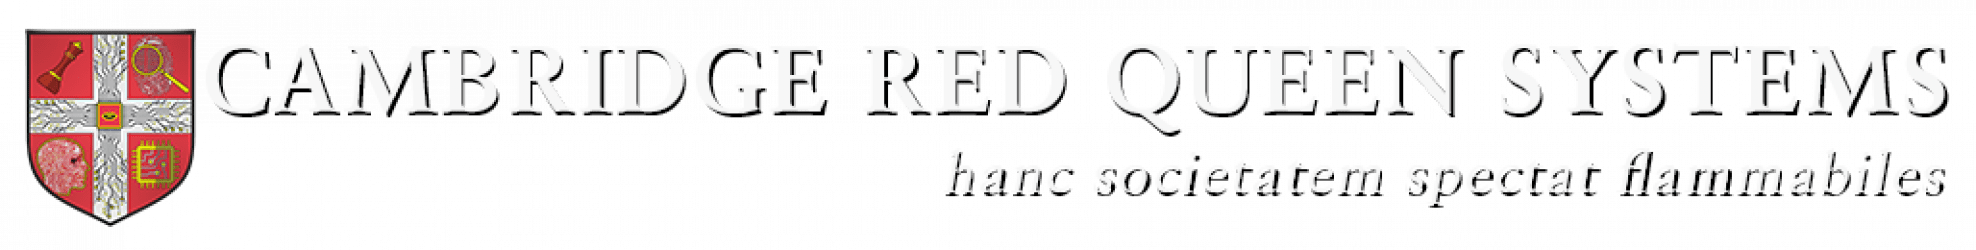 Cambridge Red Queen Systems blog